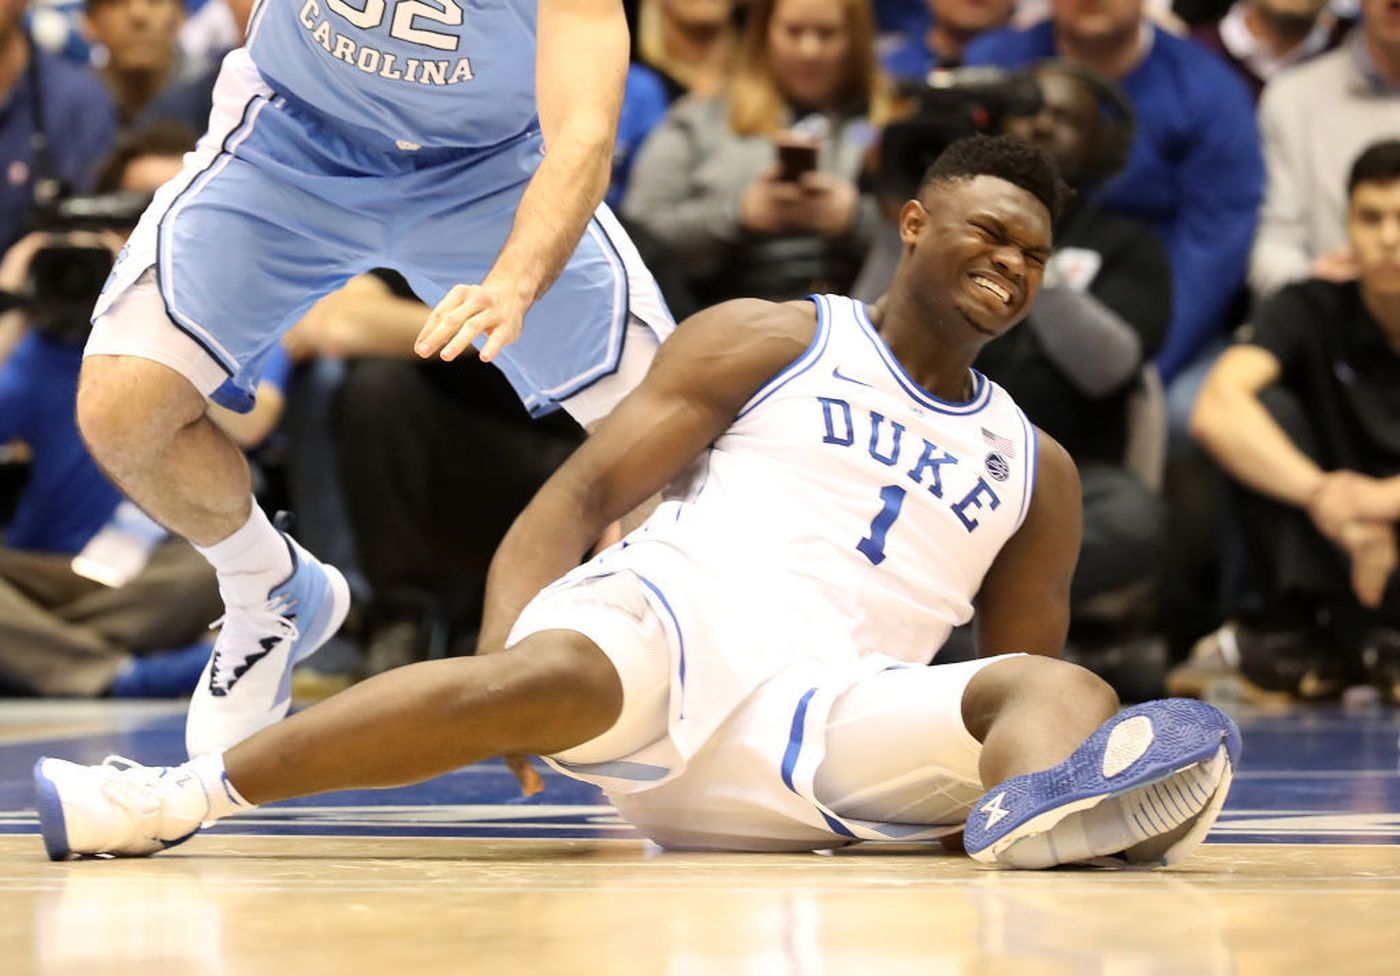 Luke Maye (32) gets the ball as Zion Williamson (1) falls after his foot cuts the bottom of his Nike shoe.